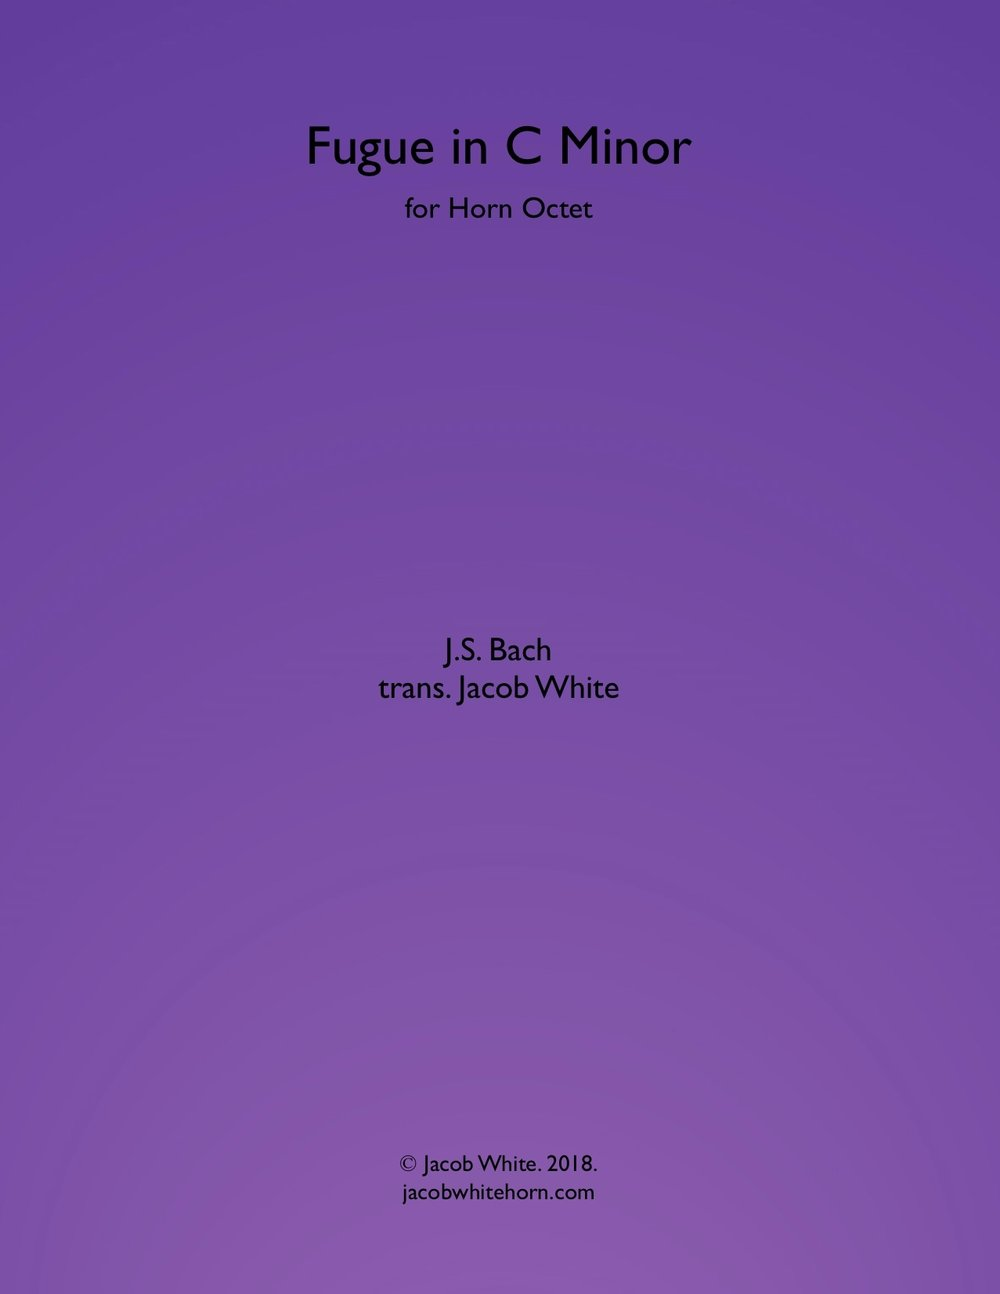 Fugue in C Minor by J.S. Bach, transcribed for Horn Octet by Jacob White.